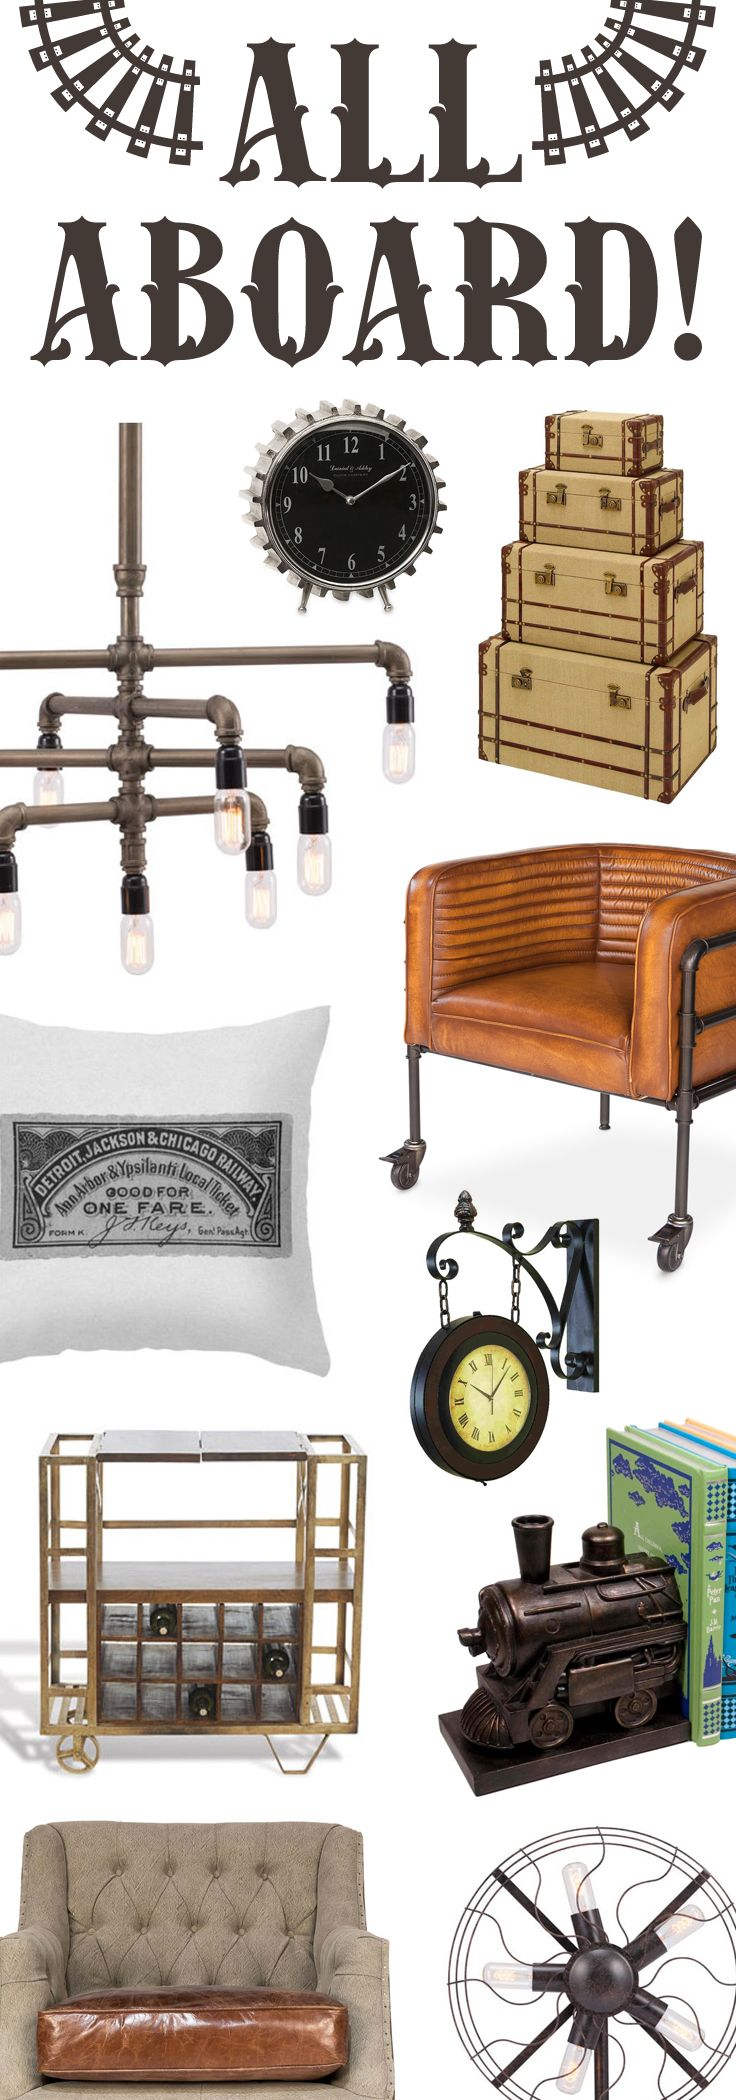 Load Up Your Home With Old-Fashioned Railroad-Inspired Designs | Up to 60% Off at dotandbo.com